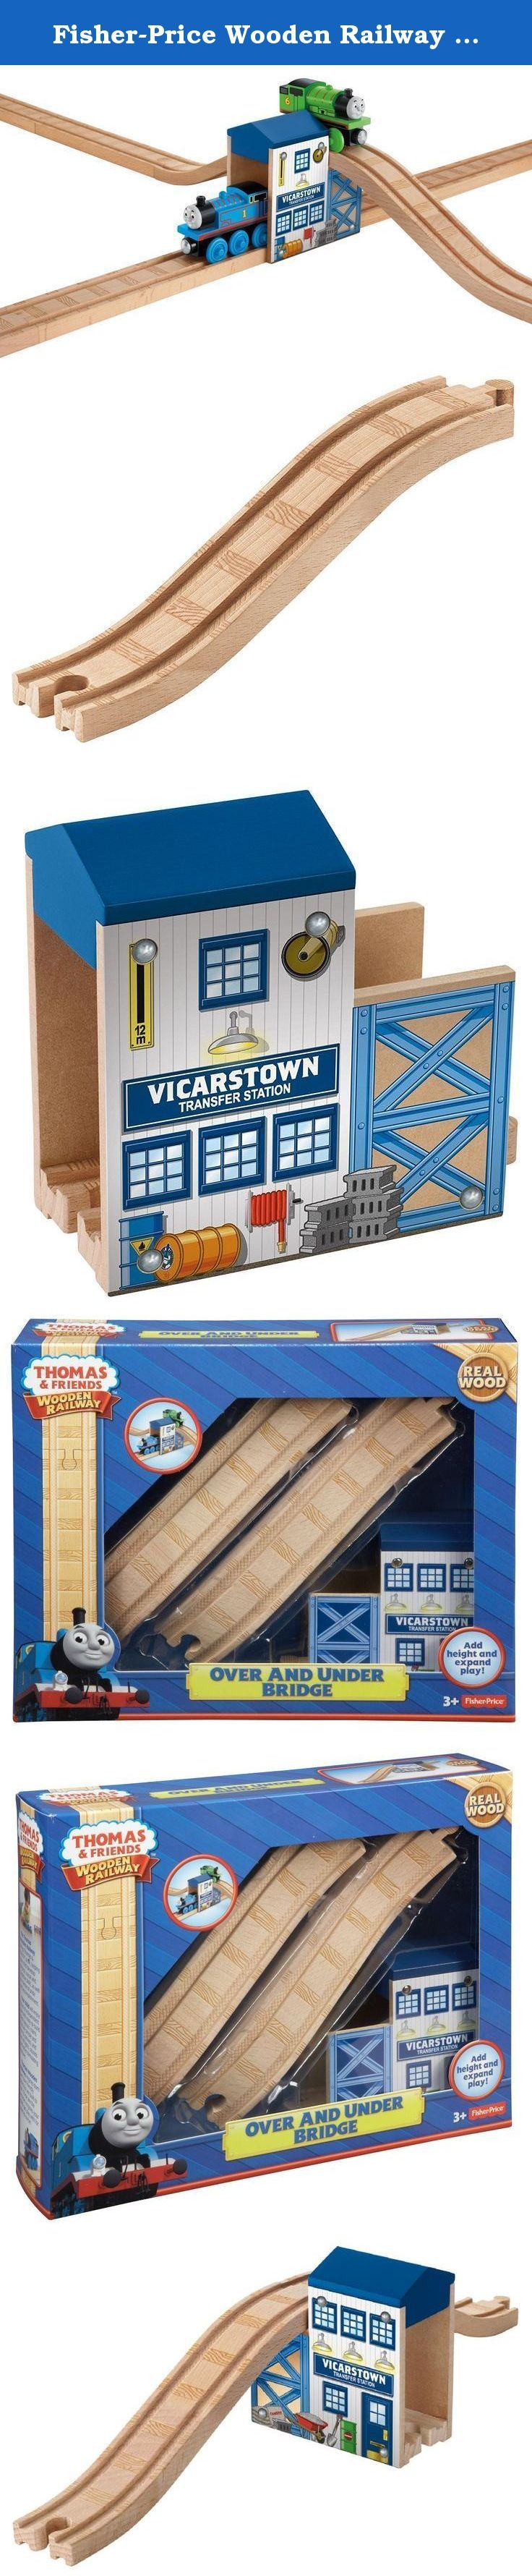 Fisher-Price Wooden Railway Over and Under Bridge. Expand your Wooden Railway with over-under play as you send your engines to the Vicarstown Transfer Station! 3+.